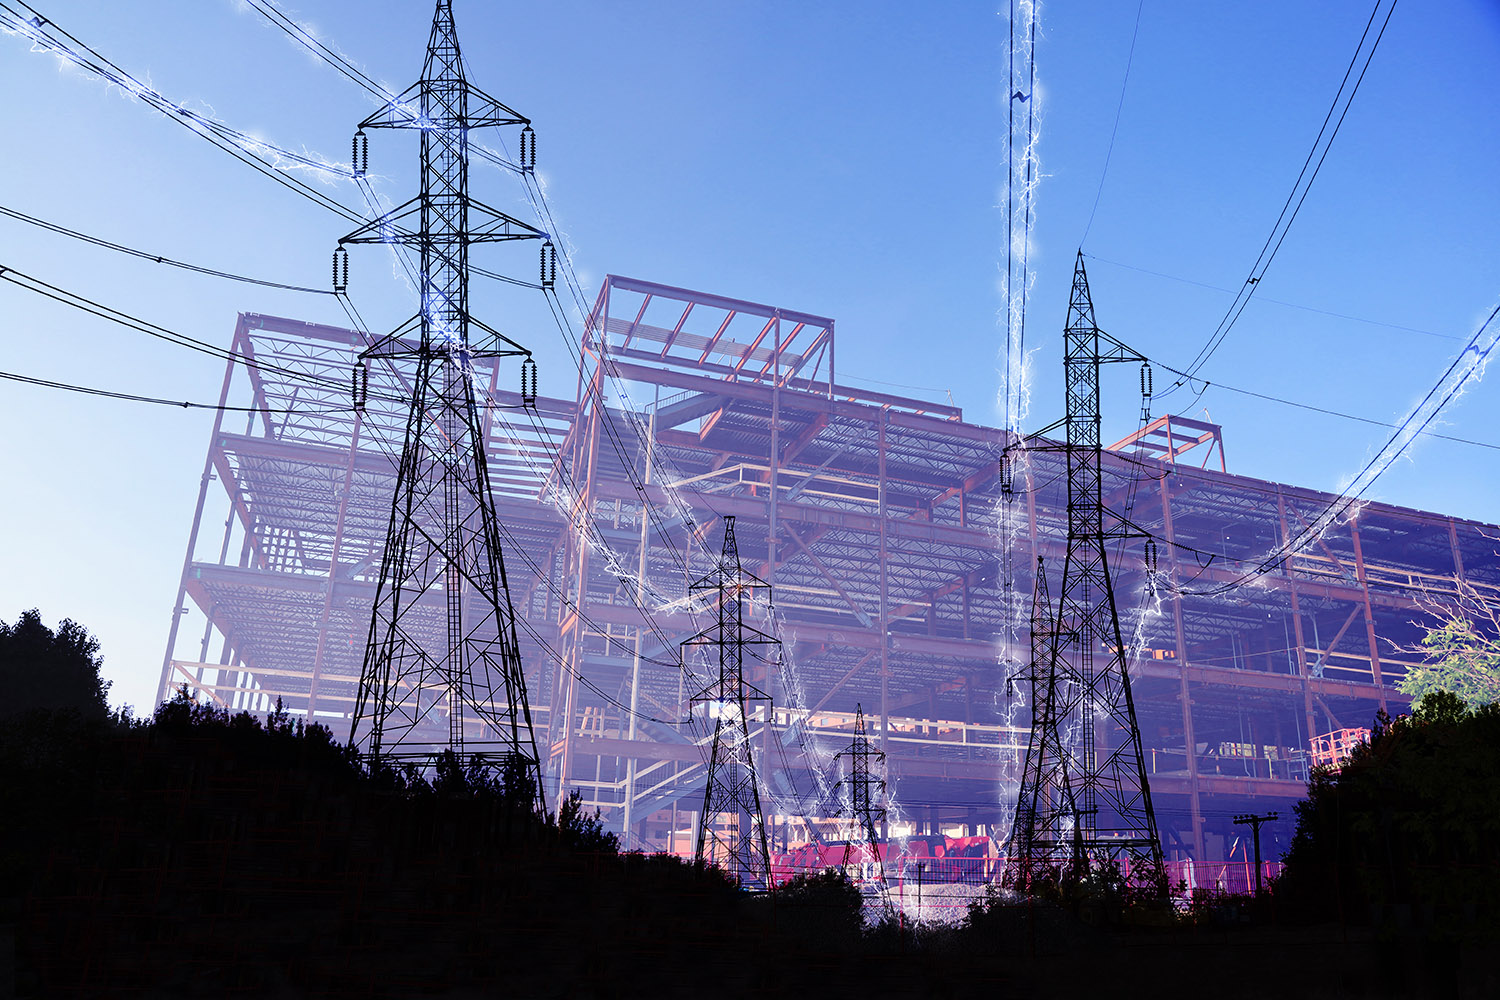 Construction Industry Electrification in Blue - Stock Photos, Pictures & Images